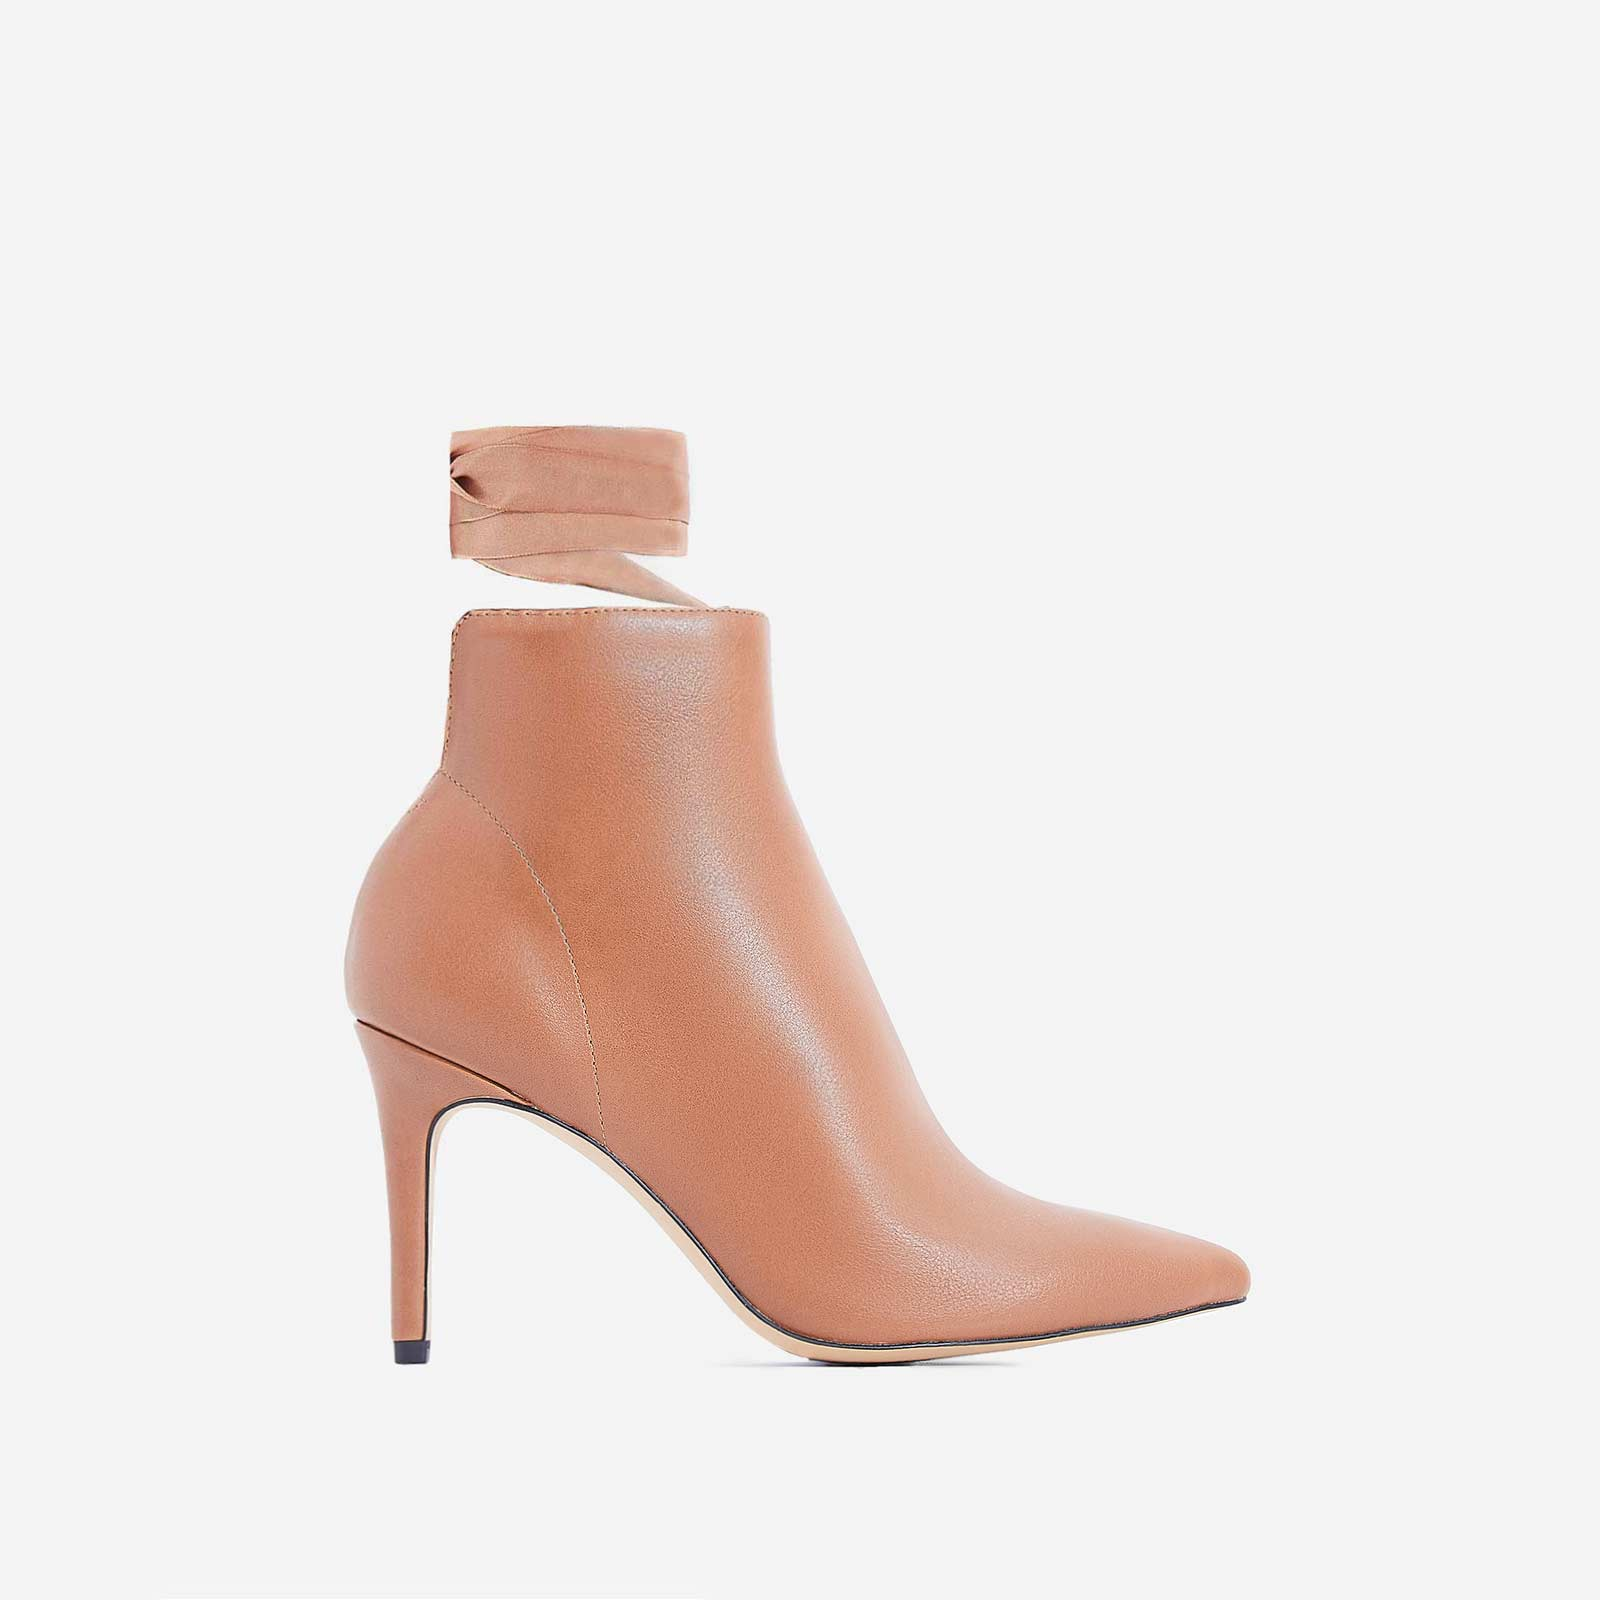 Becca Lace Up Ankle Boot In Tan Faux Leather